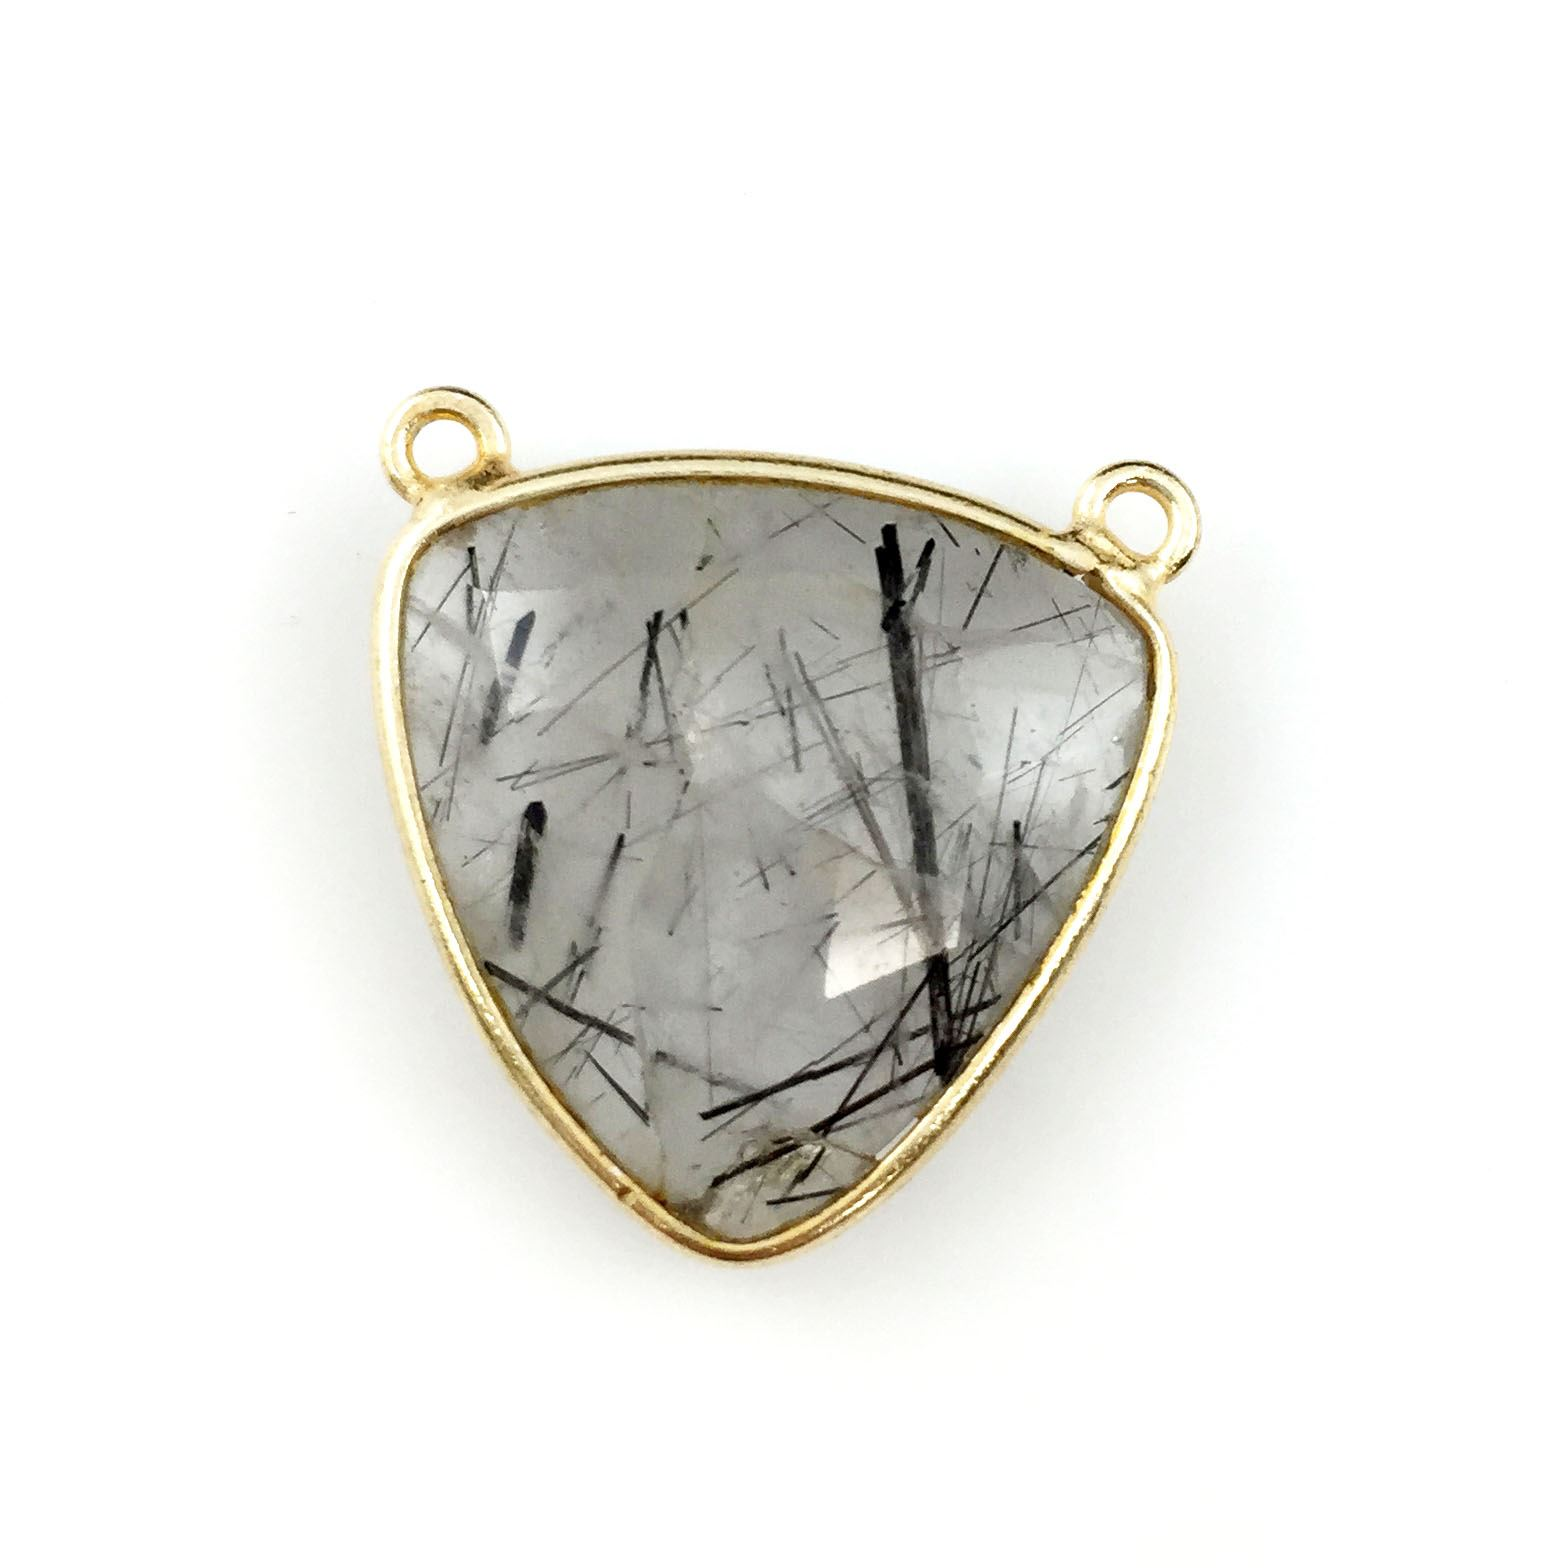 Bezel Gemstone Connector Pendant - Black Rutilated Quartz - Gold plated Sterling Silver - Large Trillion Shaped Faceted - 18 mm - 1 piece